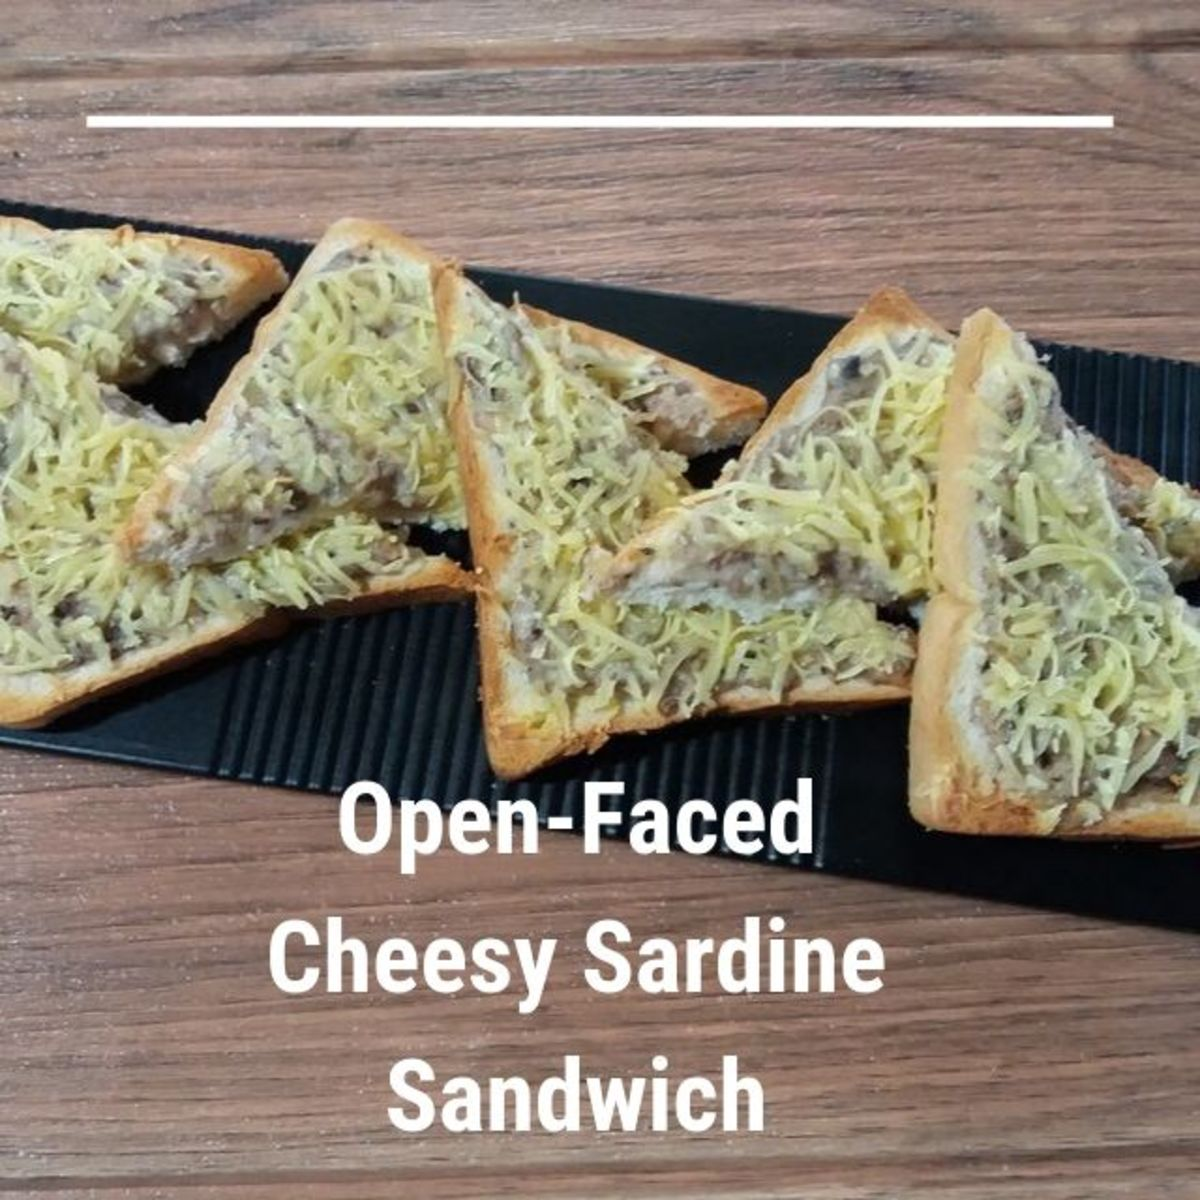 How to Make Open-Faced Cheesy Sardine Sandwiches